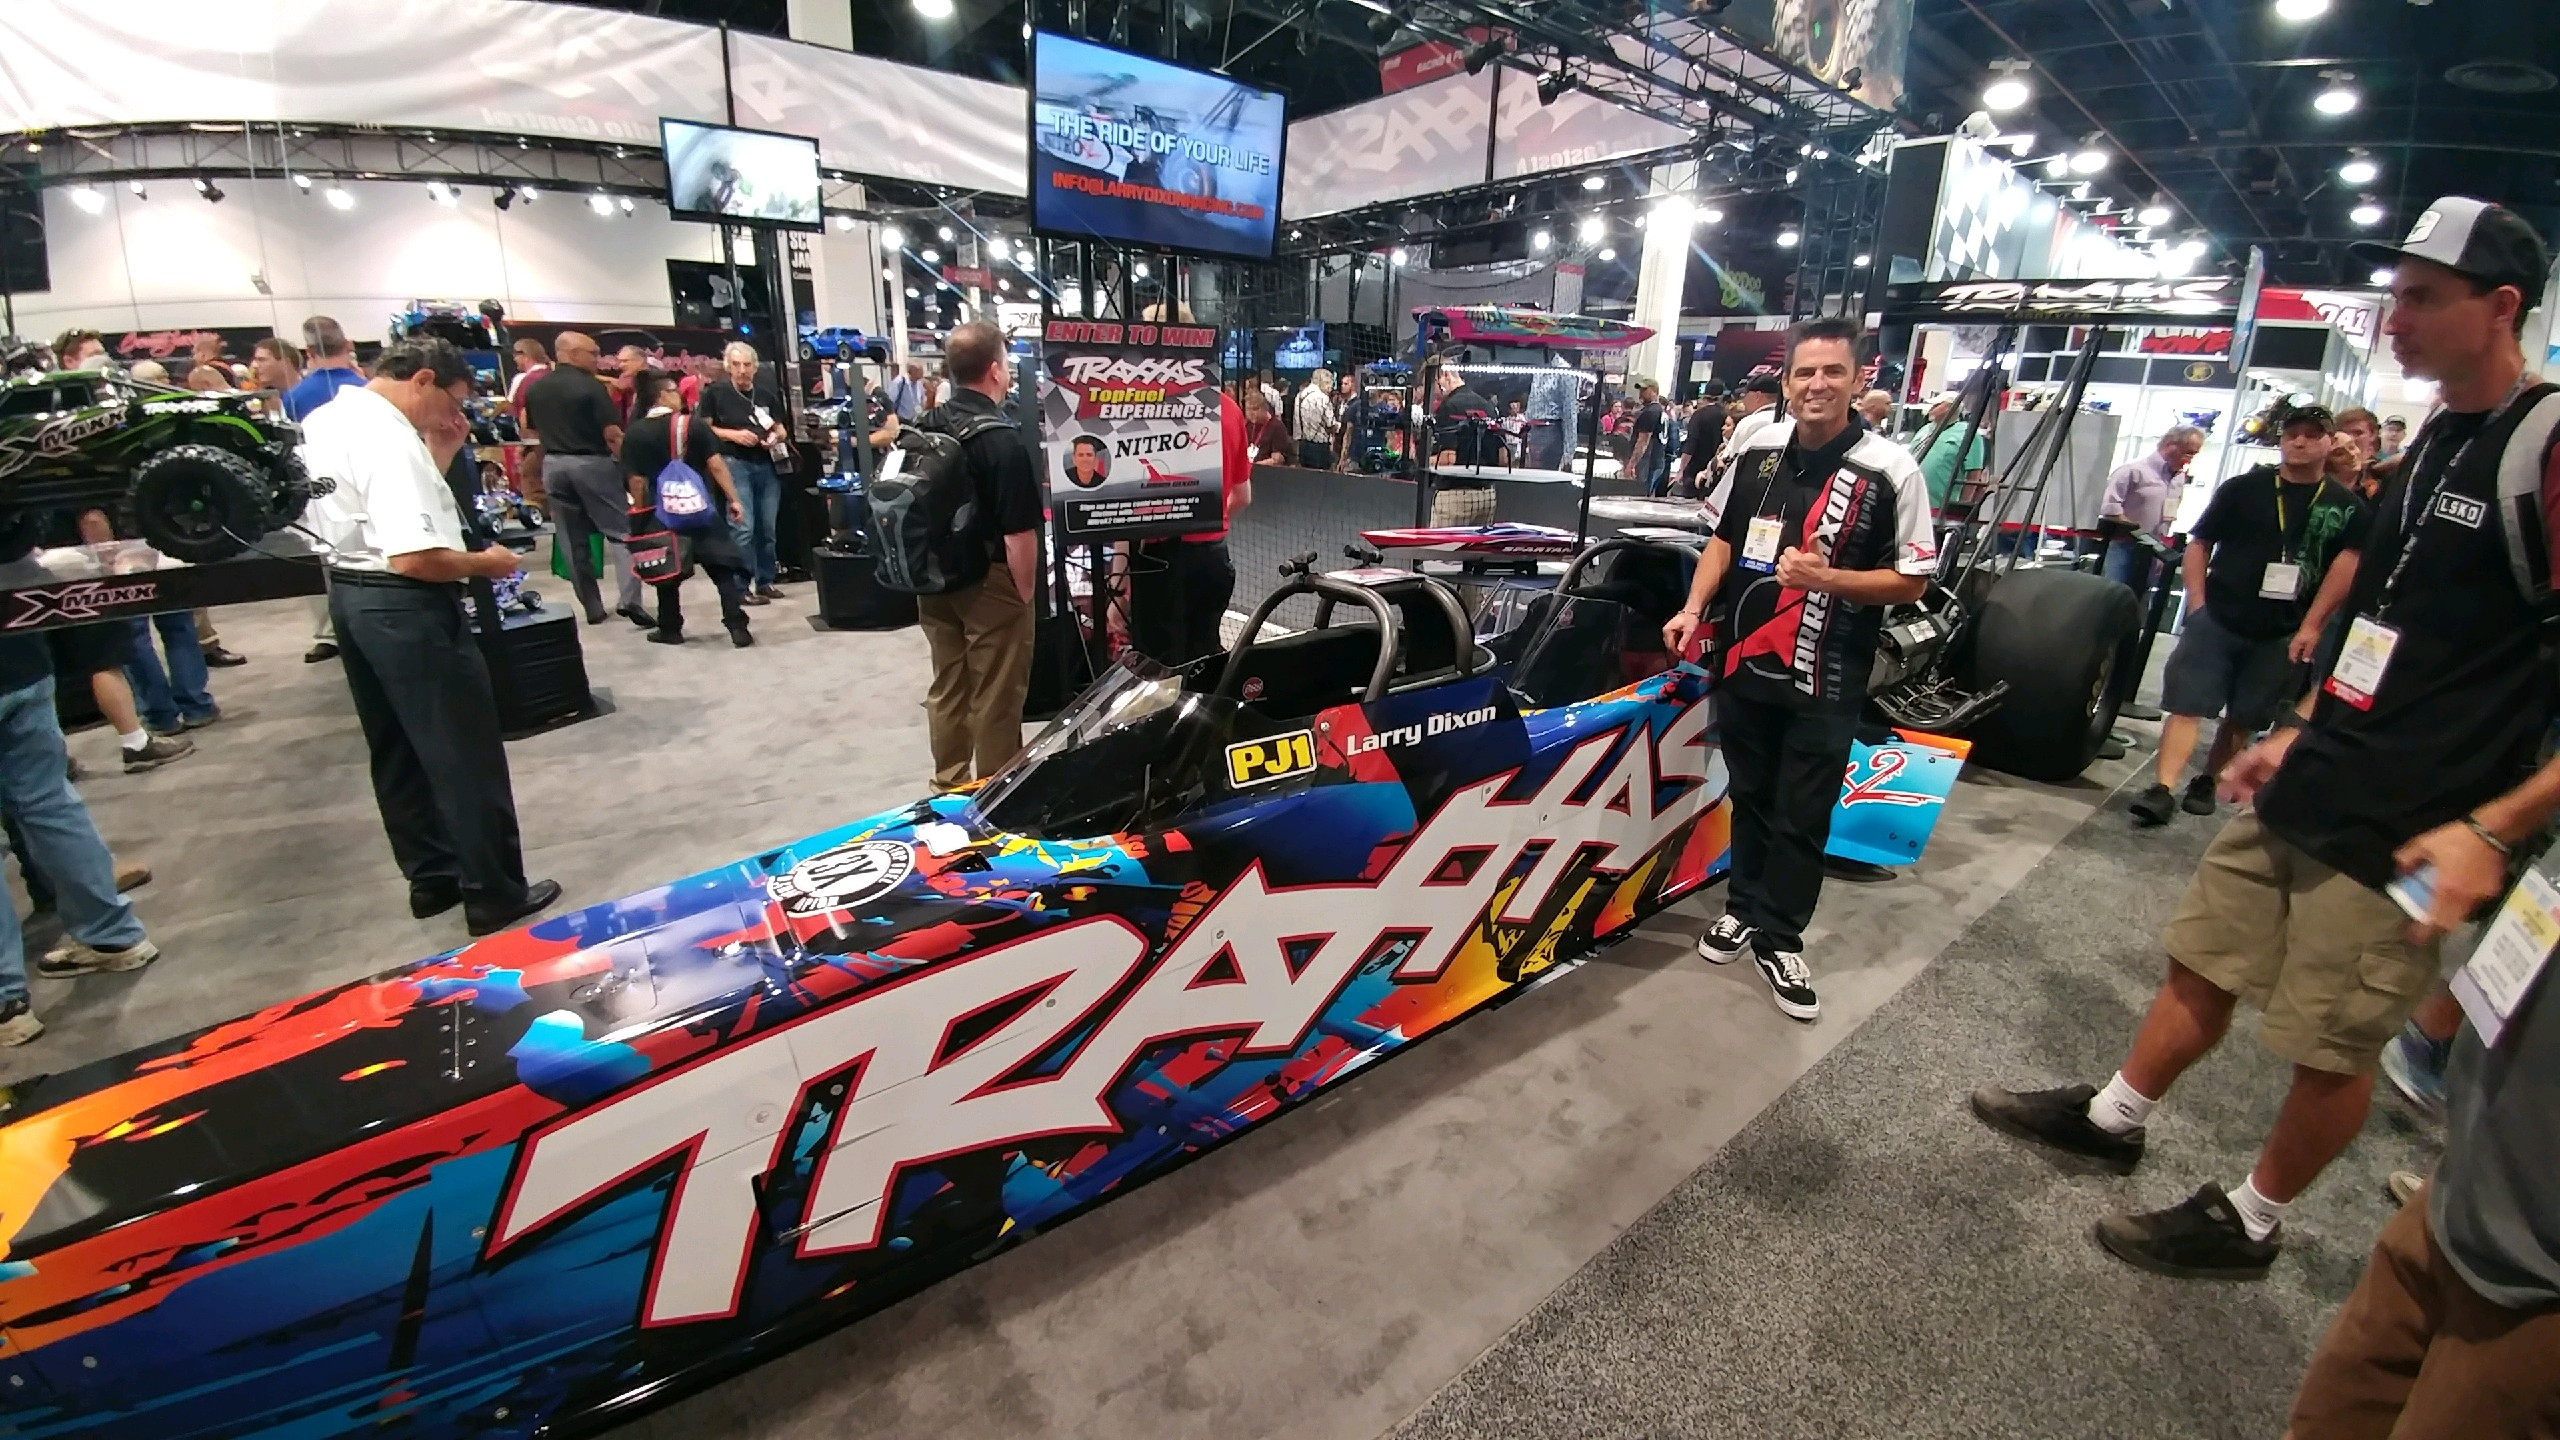 DIXON REVEALS TWO-SEAT TOP FUEL DRAGSTER (WITH VIDEO